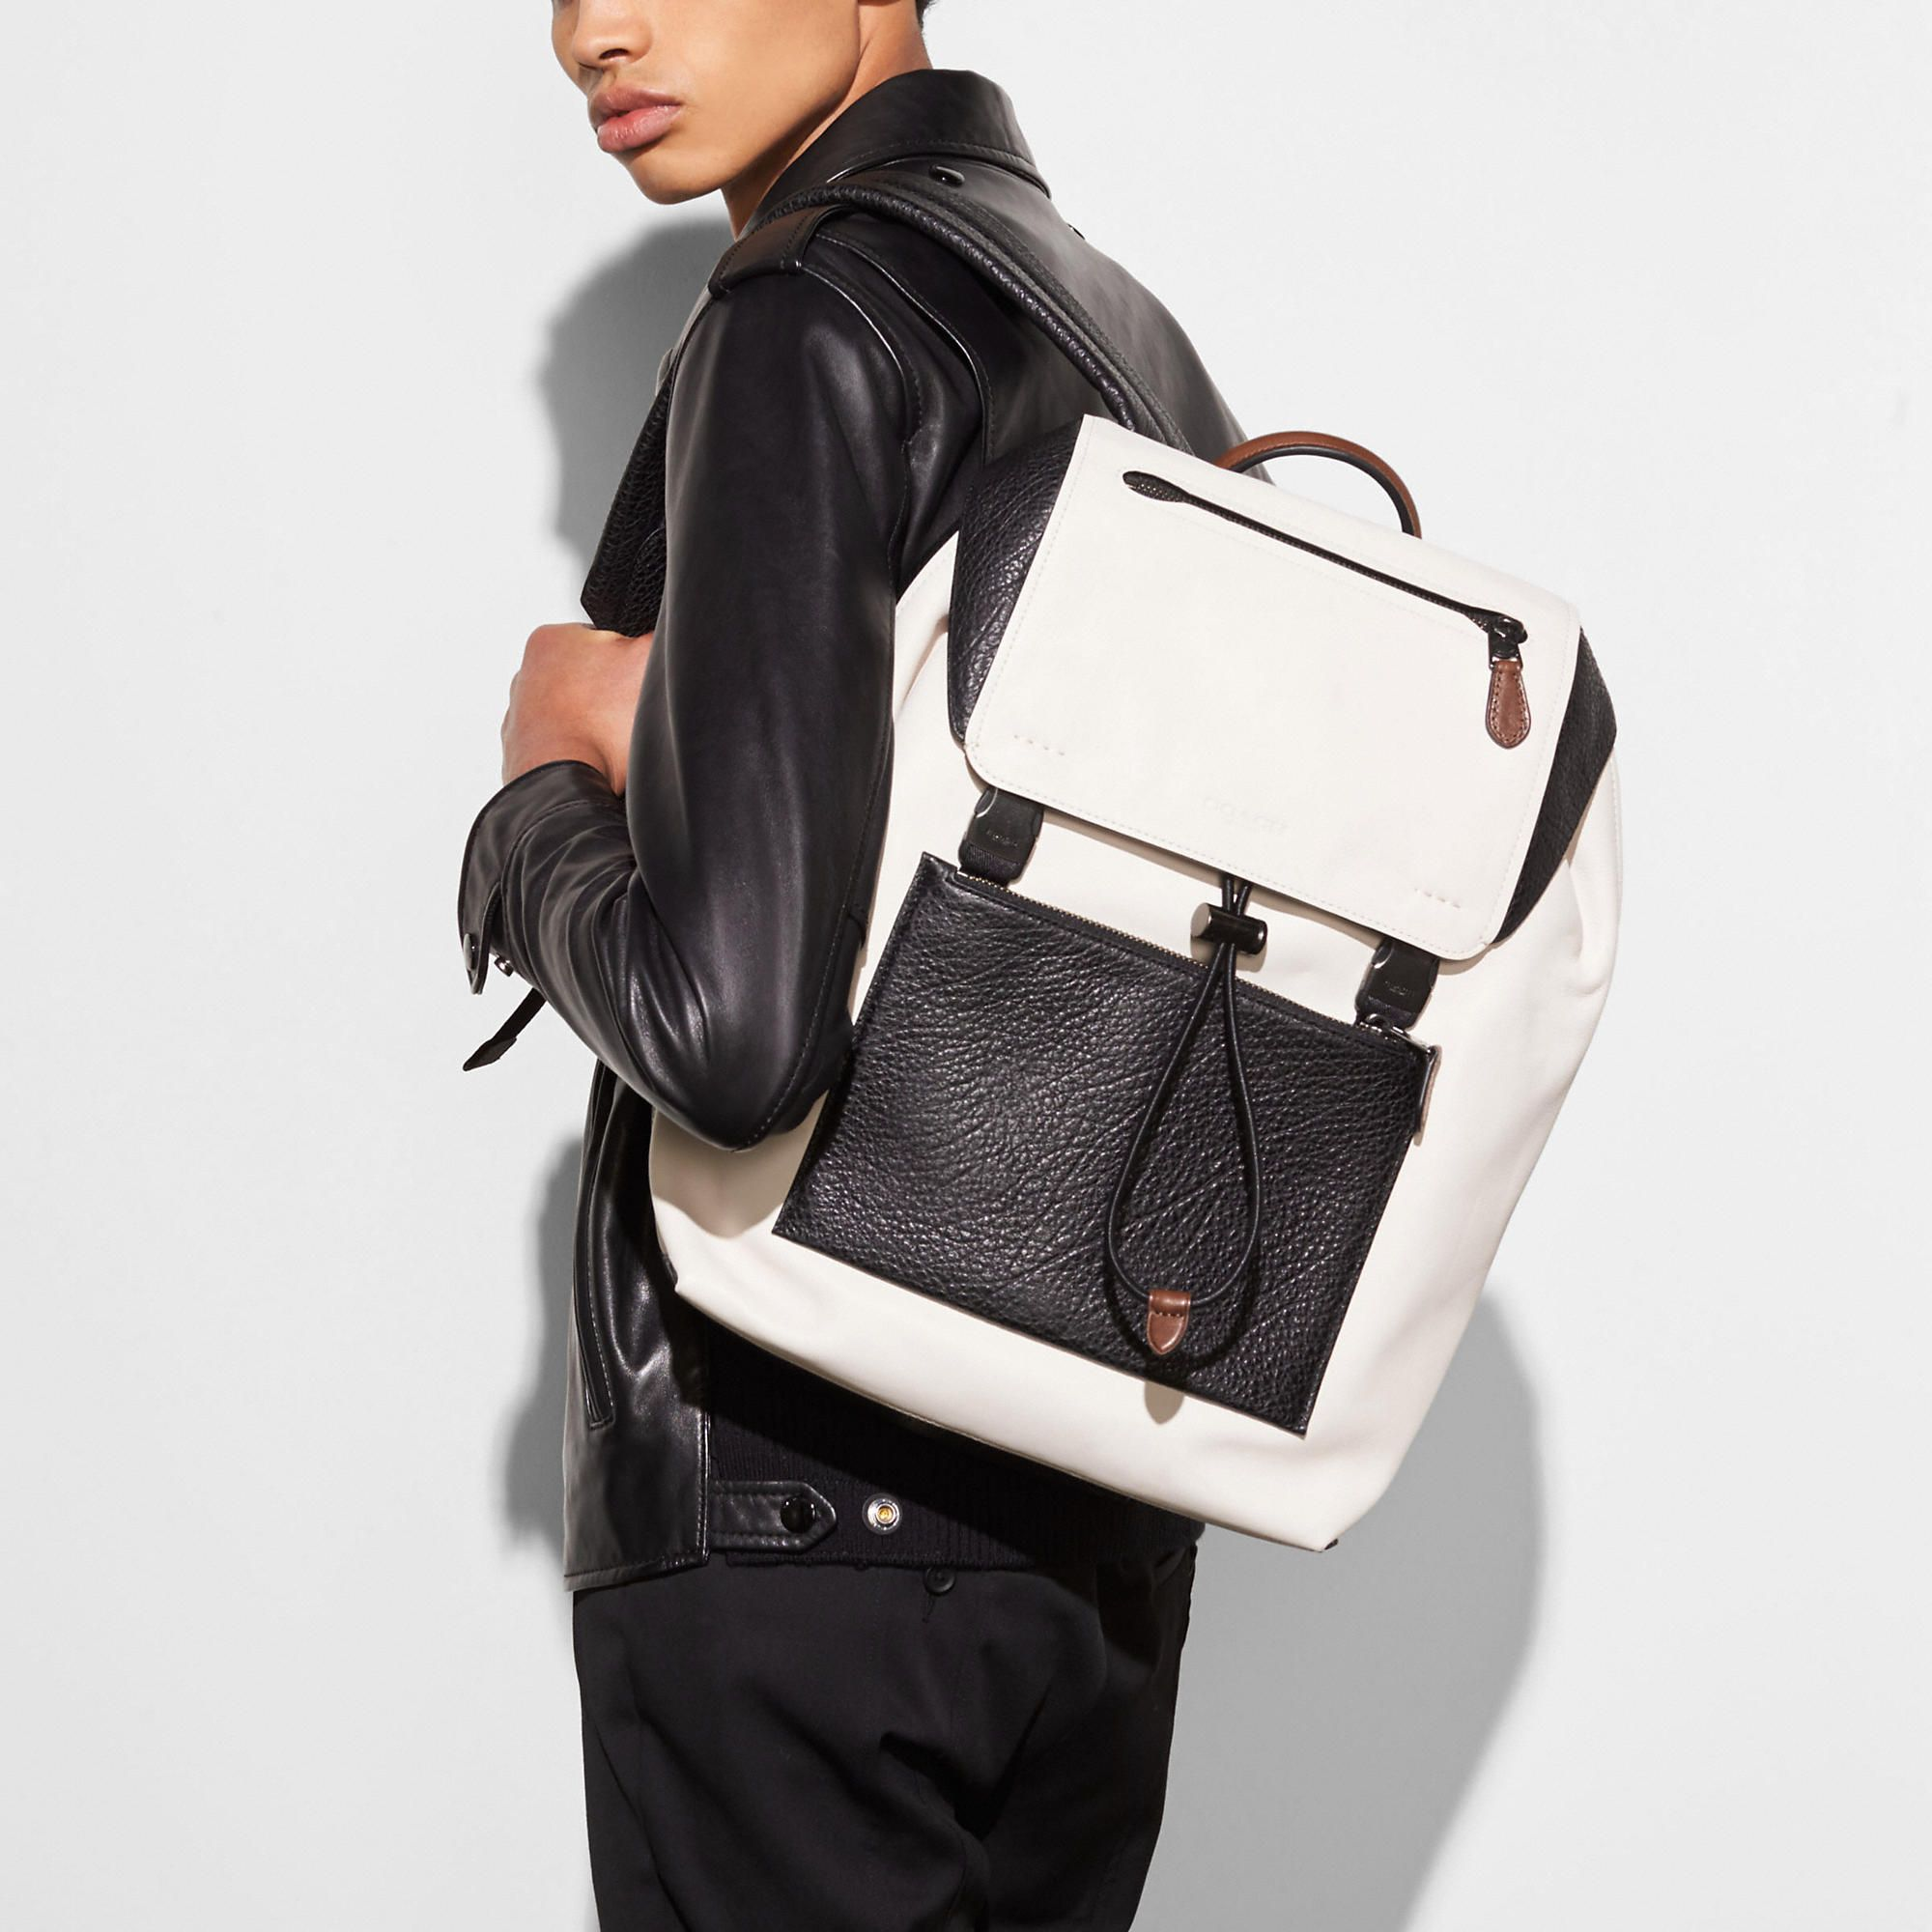 0ad13c52feee Buy Coach Mens Charles Backpack With Baseball Stitch Denim Calf Leather NWT  at online store. Coach Men